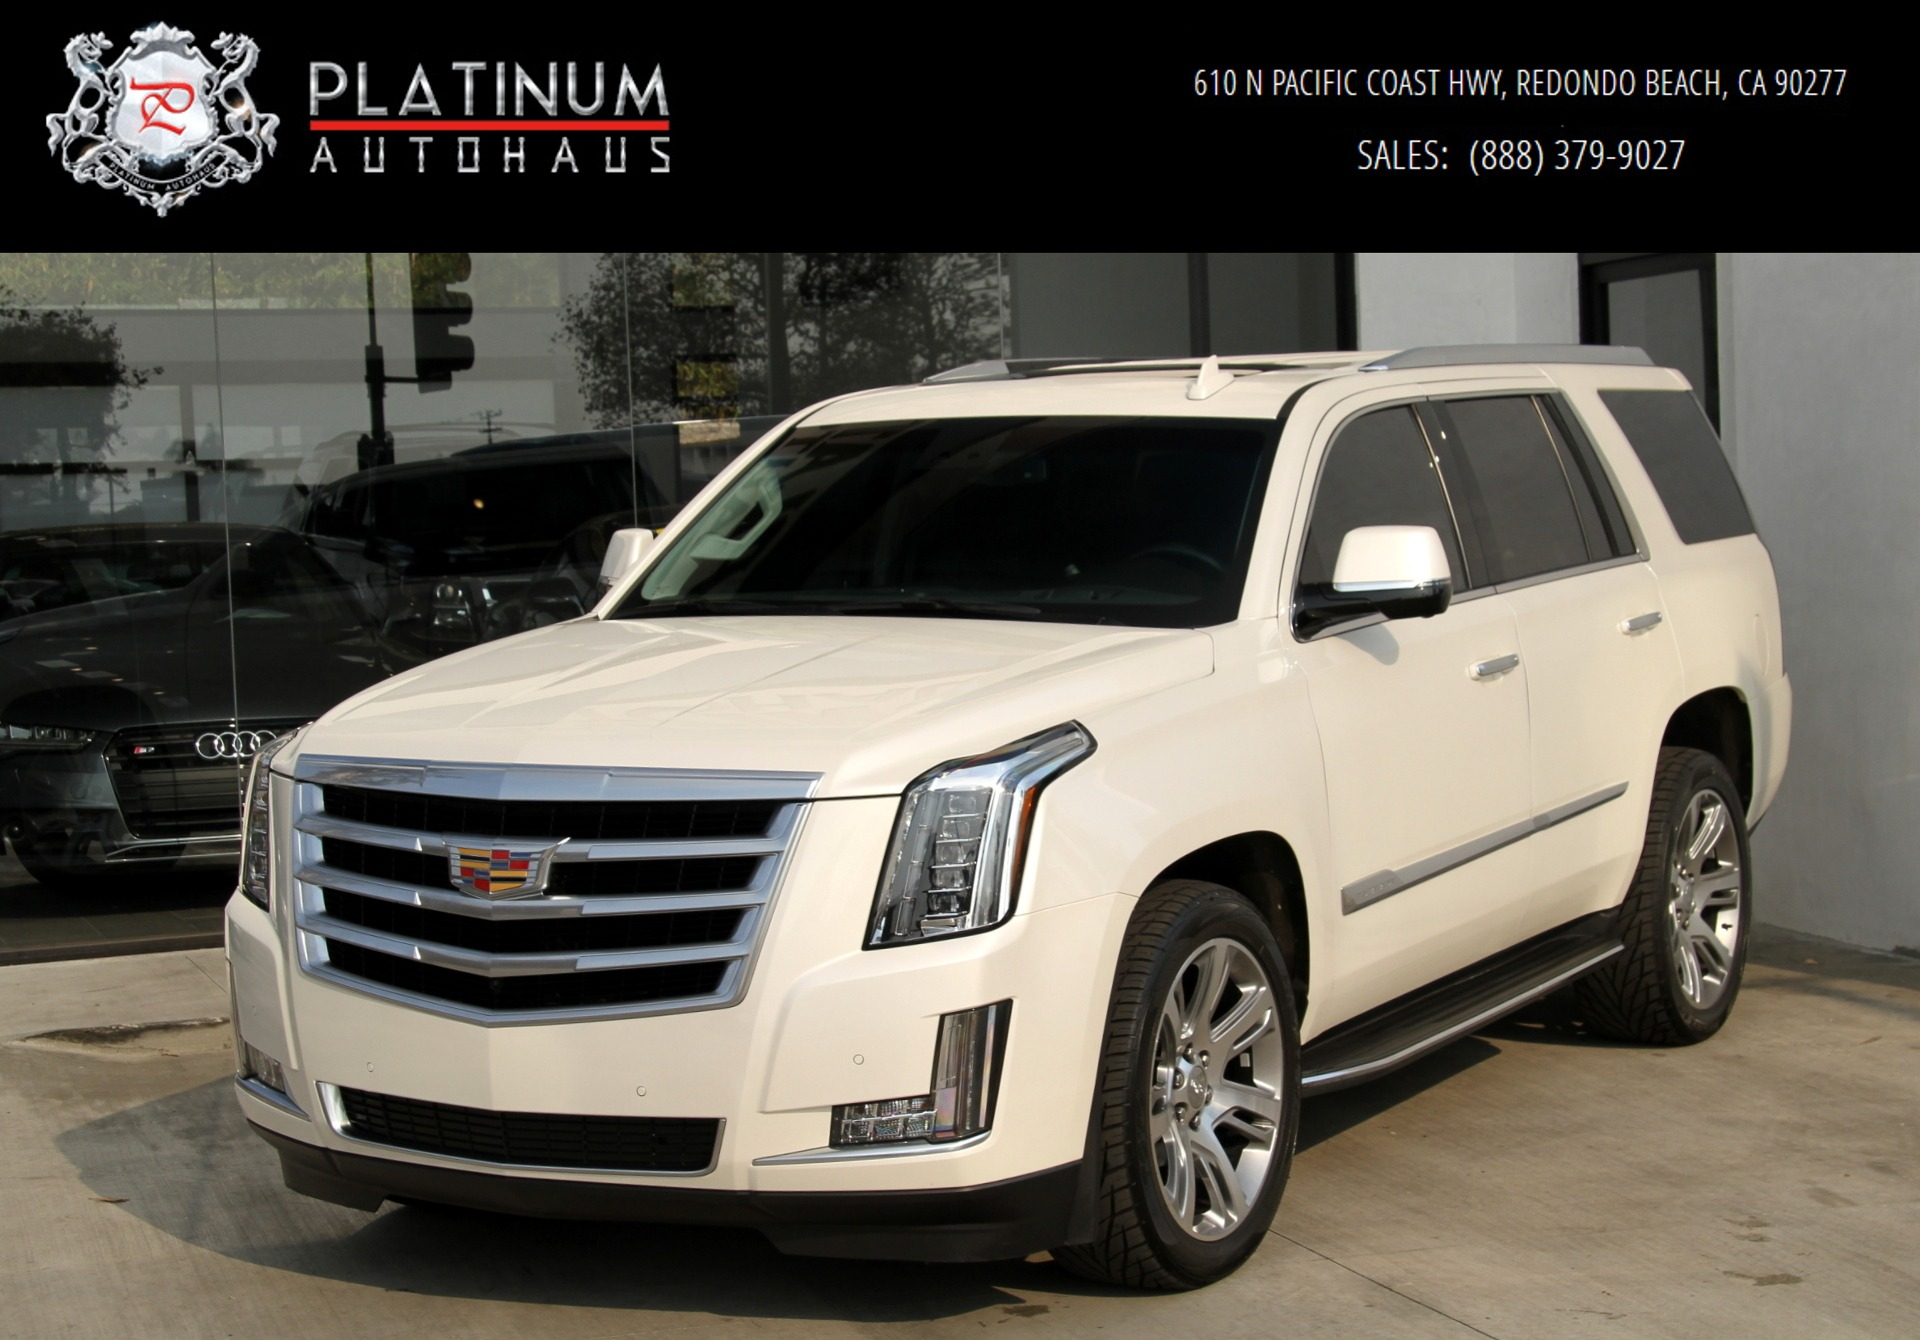 2015 cadillac escalade luxury stock 6080 for sale near redondo beach ca ca cadillac dealer. Black Bedroom Furniture Sets. Home Design Ideas